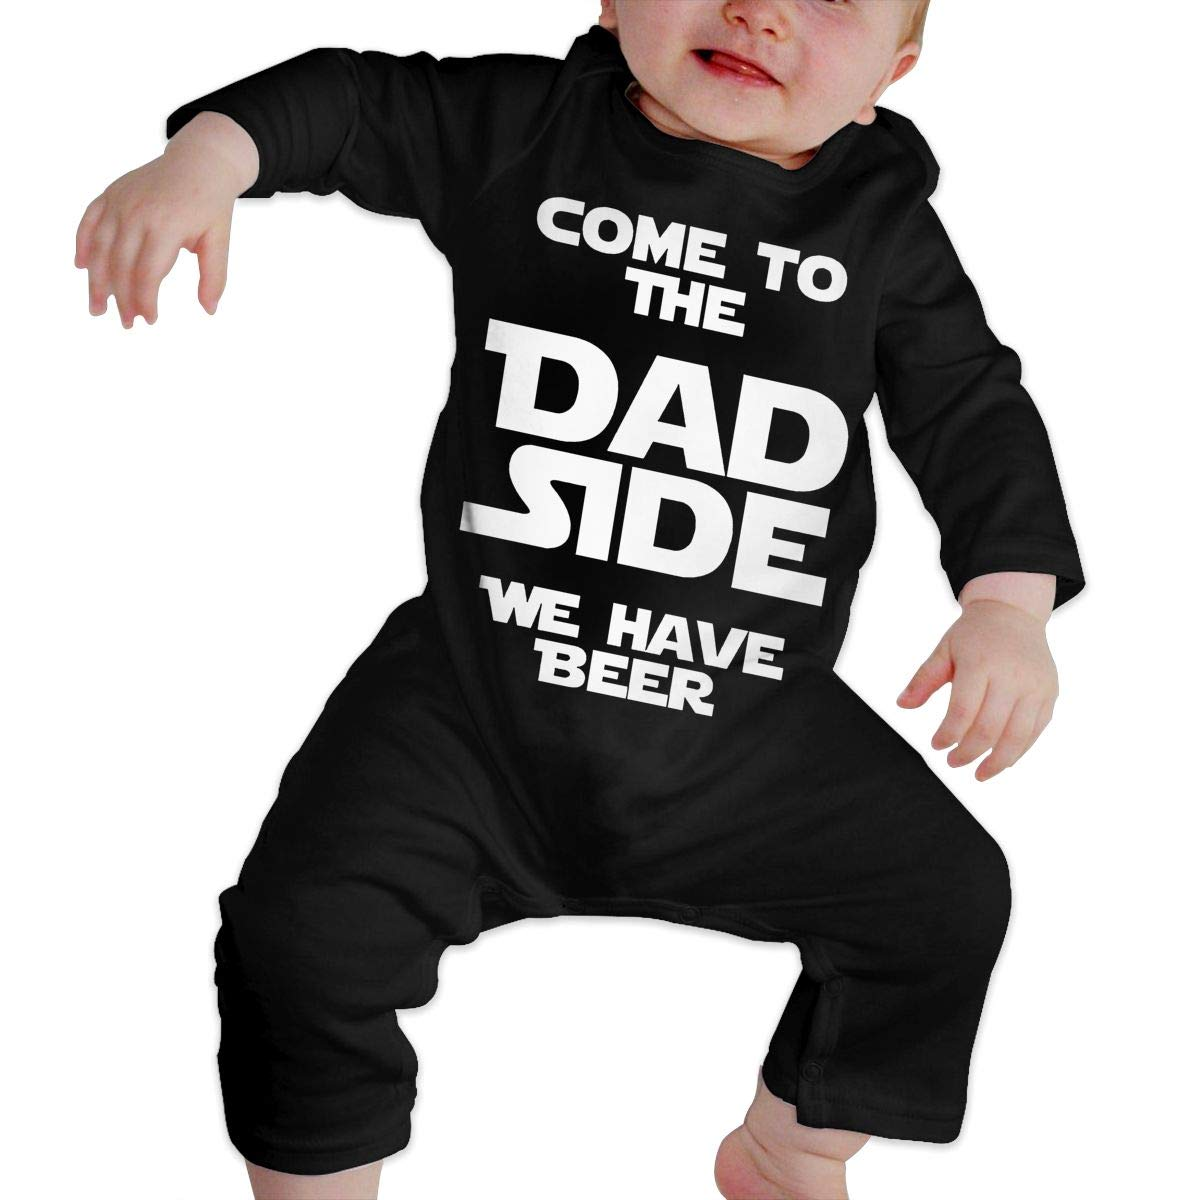 KAYERDELLE Come to The DAD Side We Have Beer Long Sleeve Unisex Baby Romper for 6-24 Months Toddler